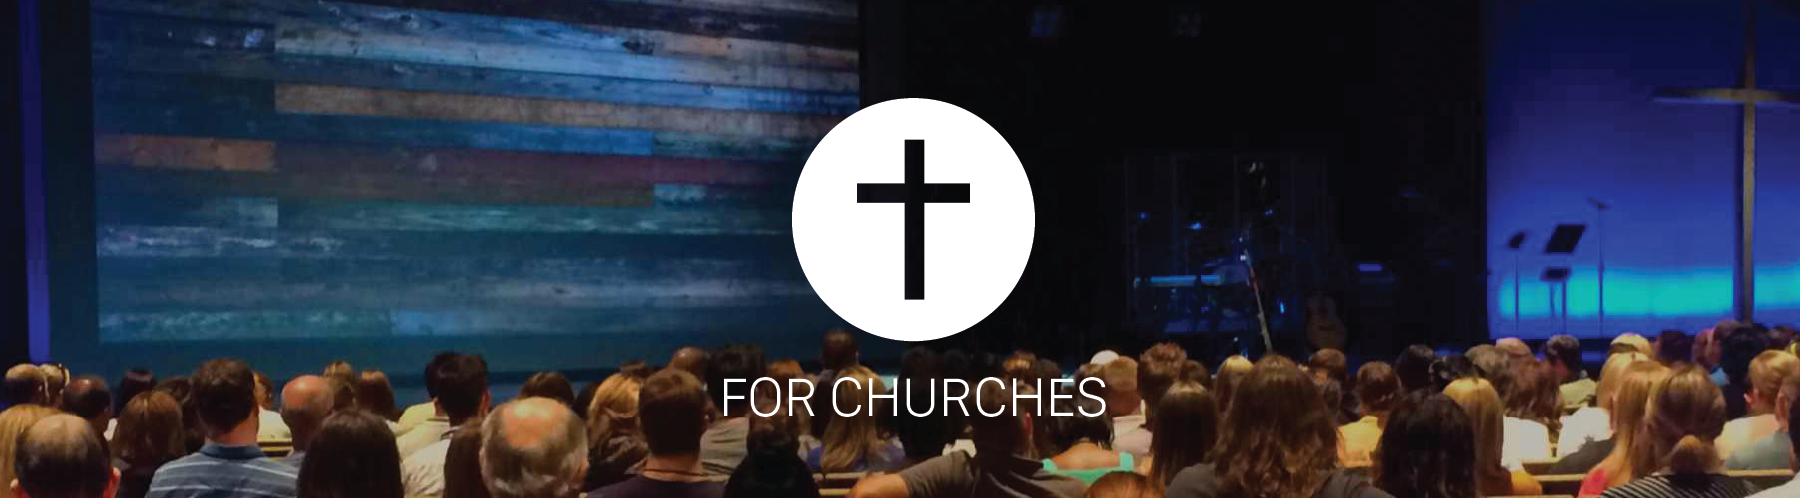 For Churches-01.png